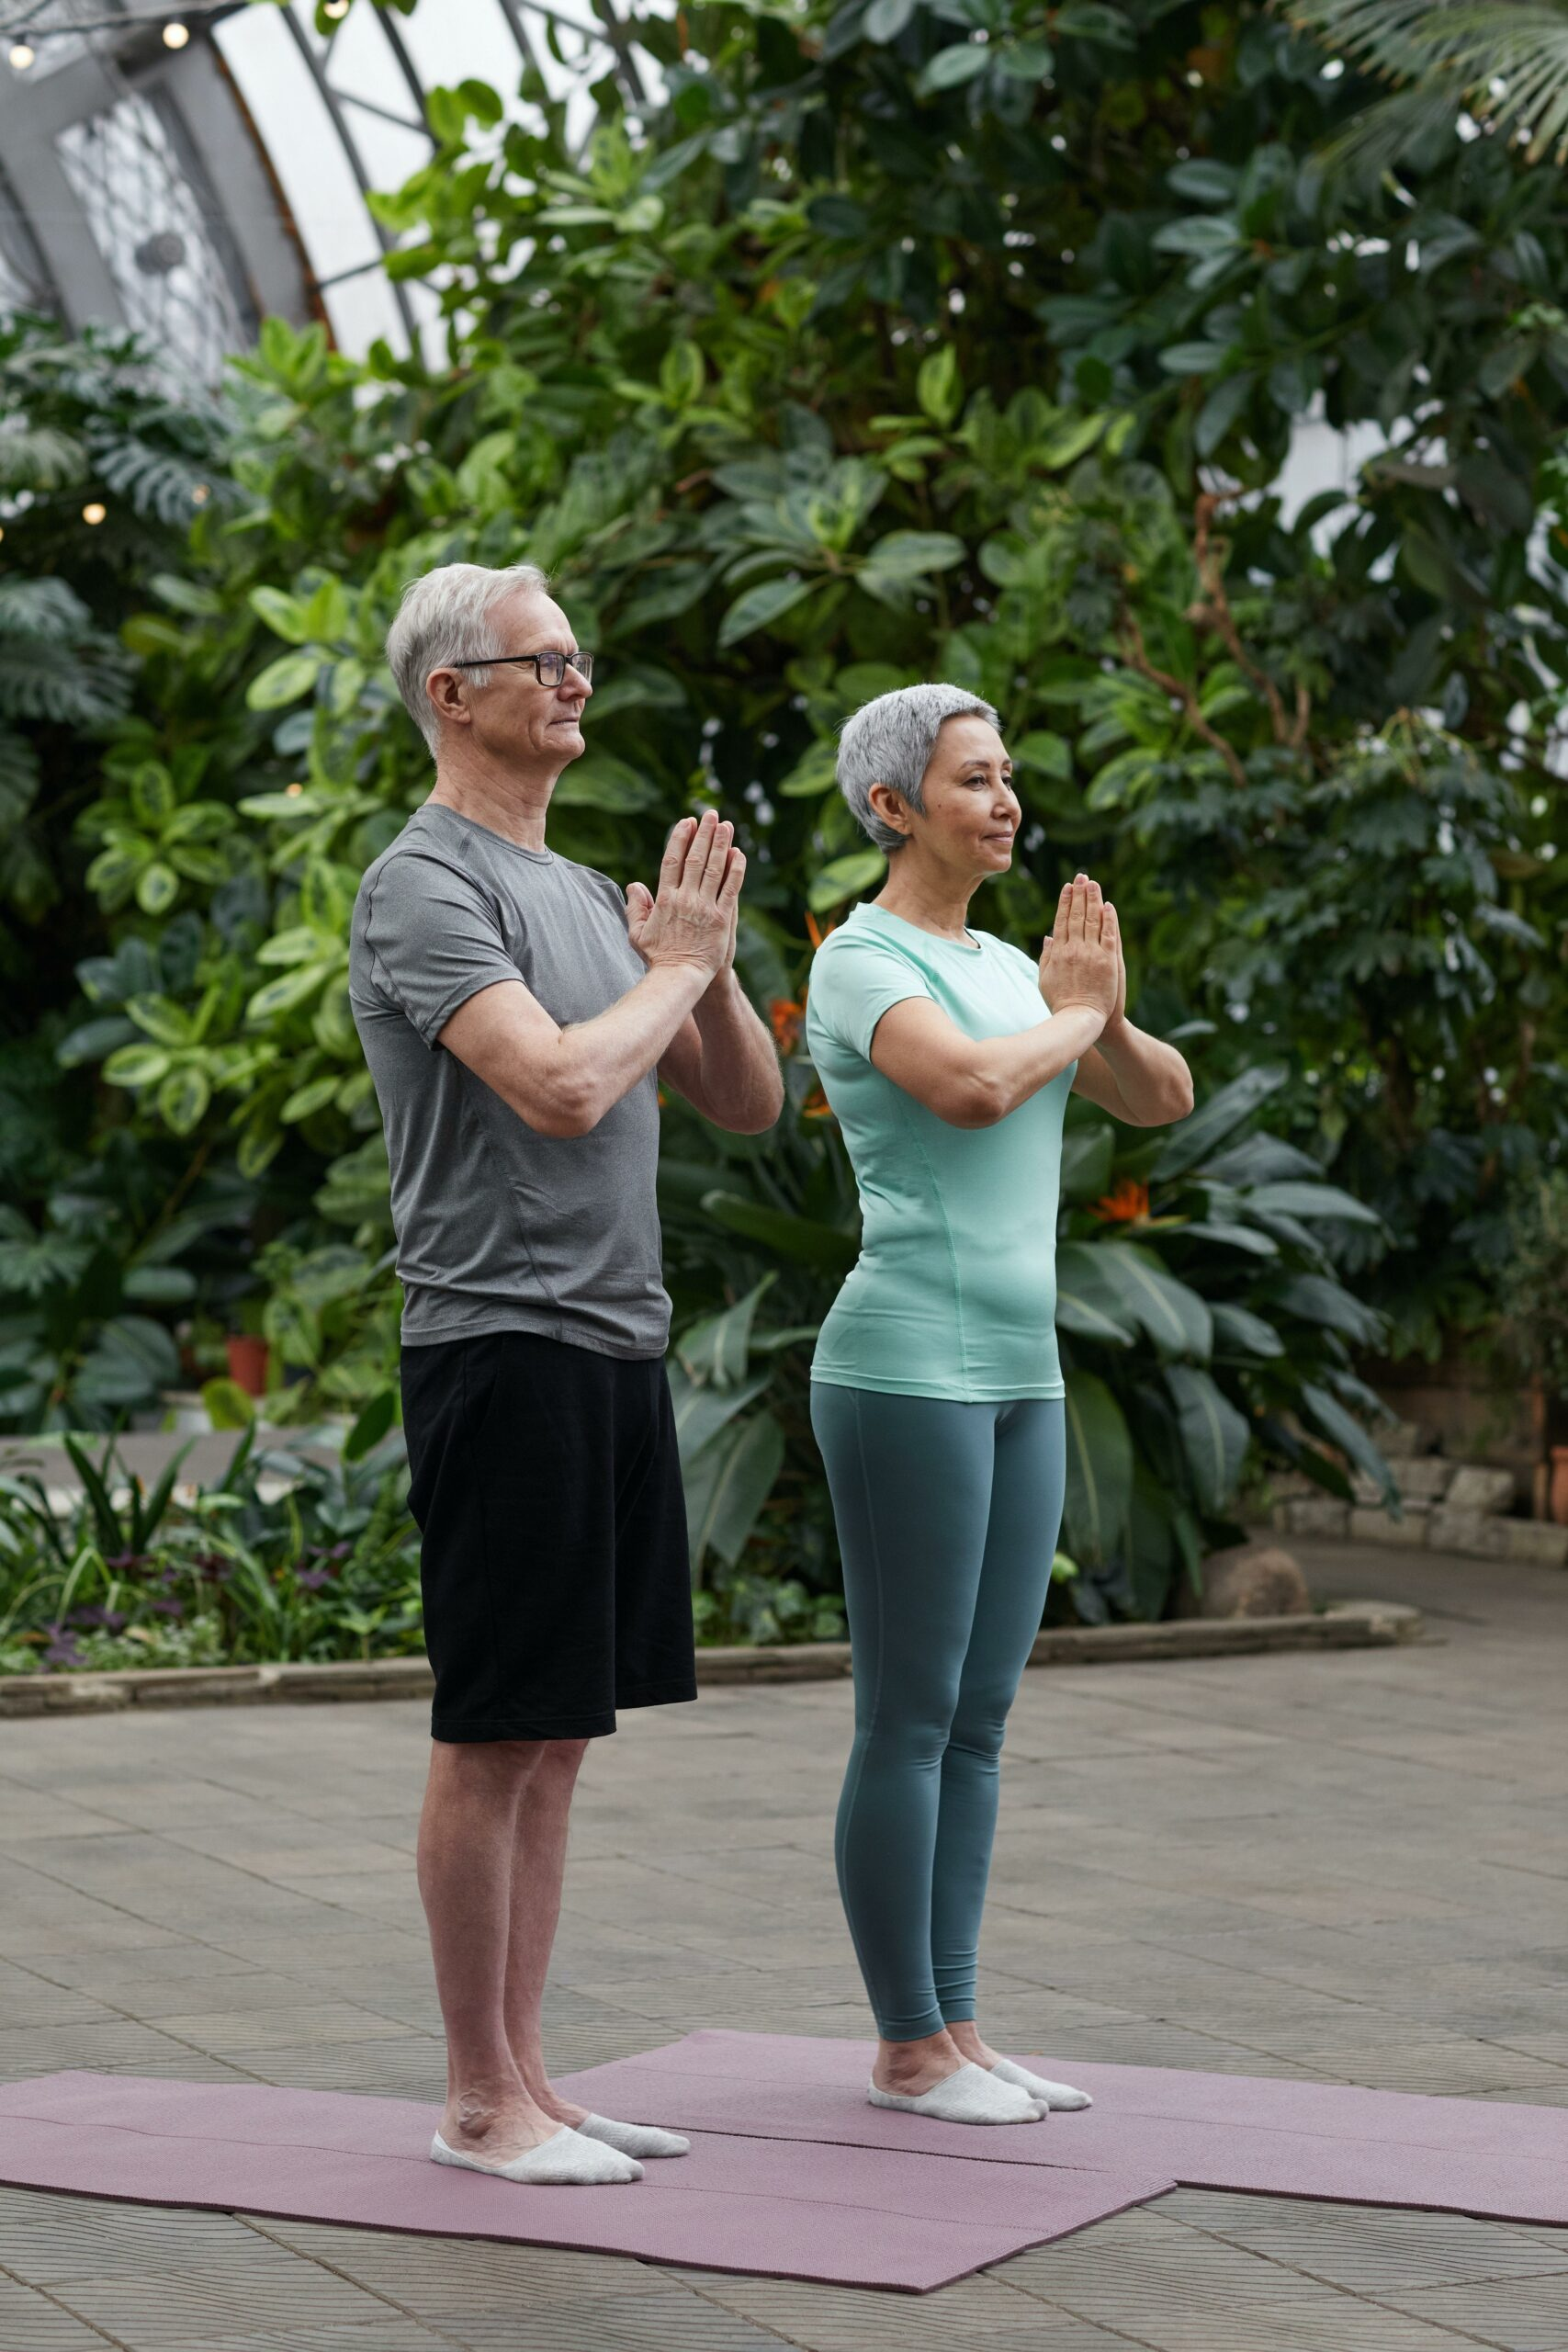 MPT, in Collaboration with Riverdale Y, Hosts Free Virtual Senior Fitness Class